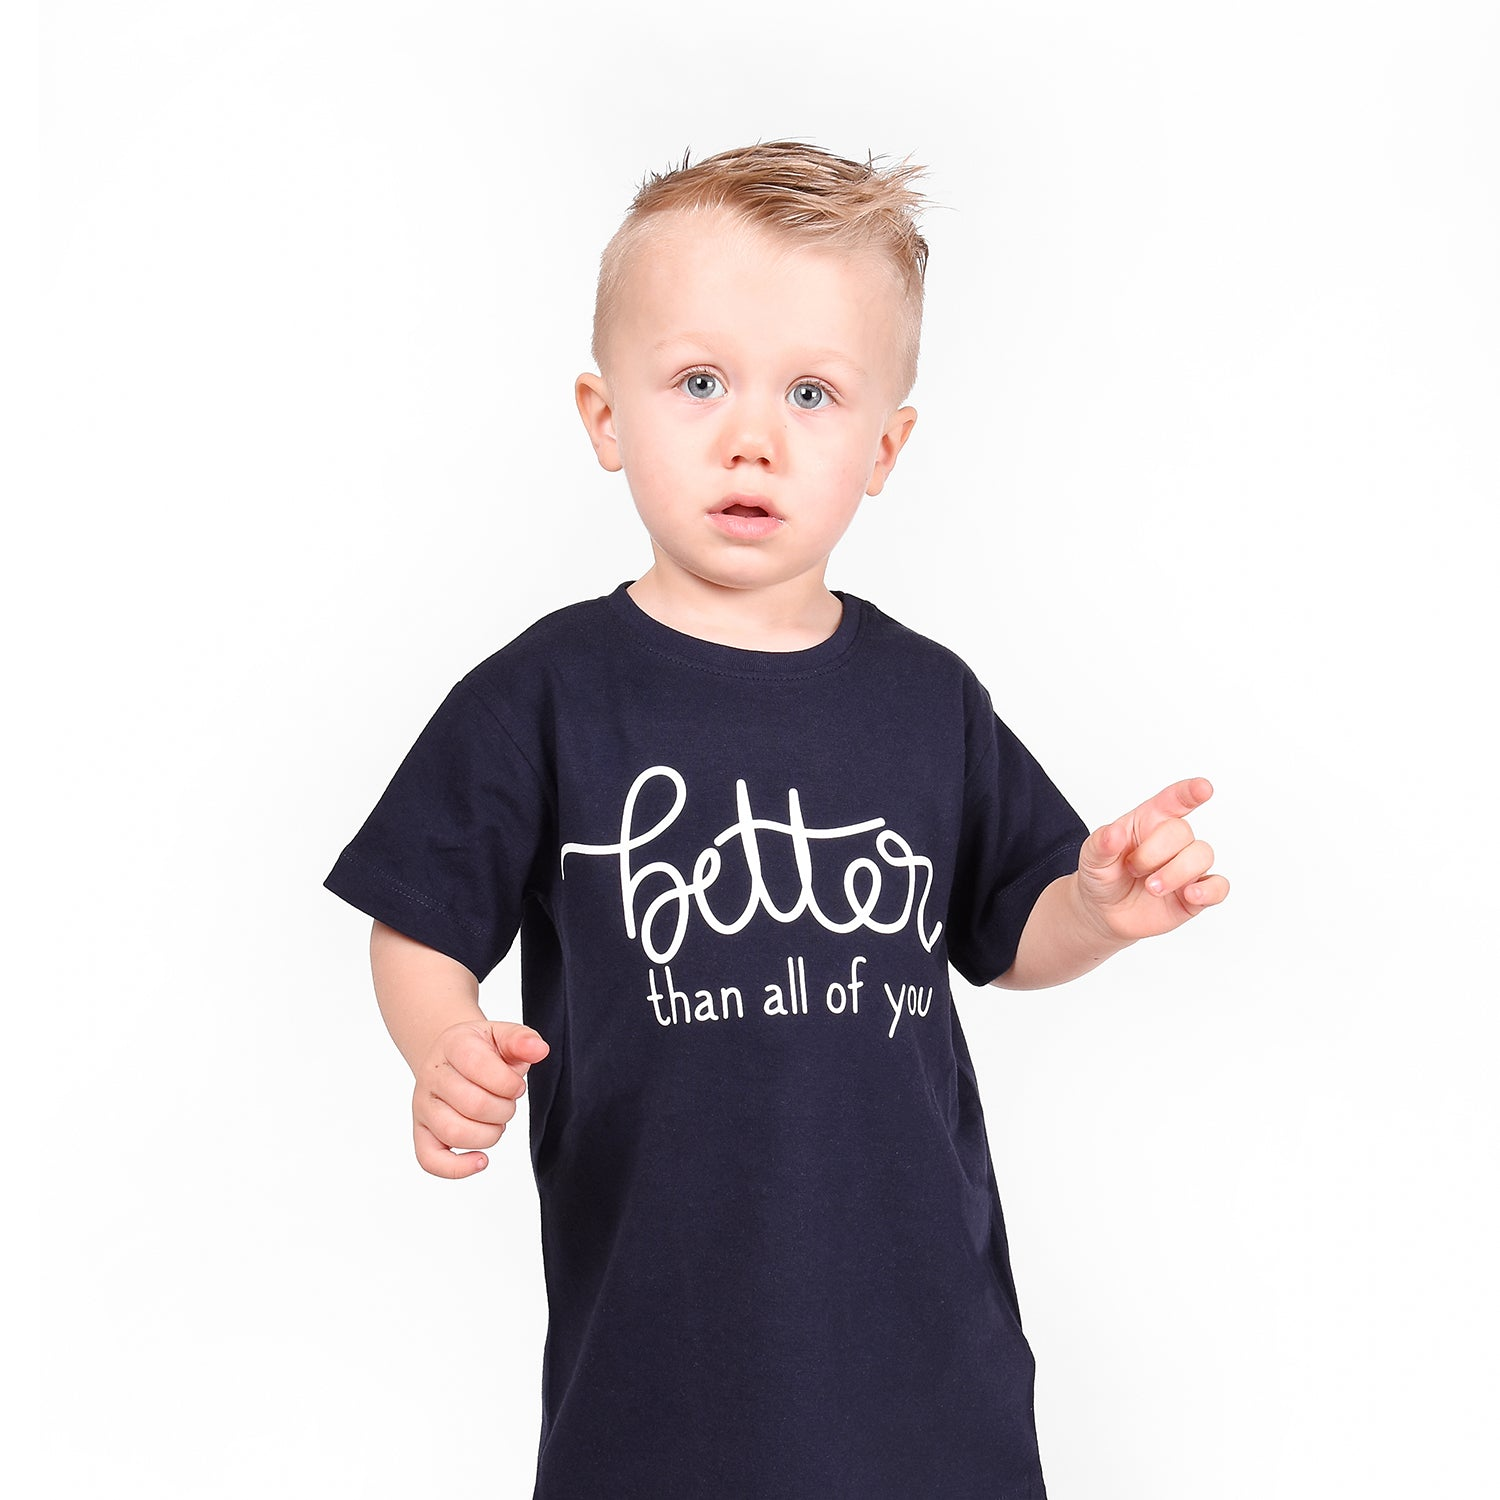 'Better than all of you' kids shortsleeve shirt